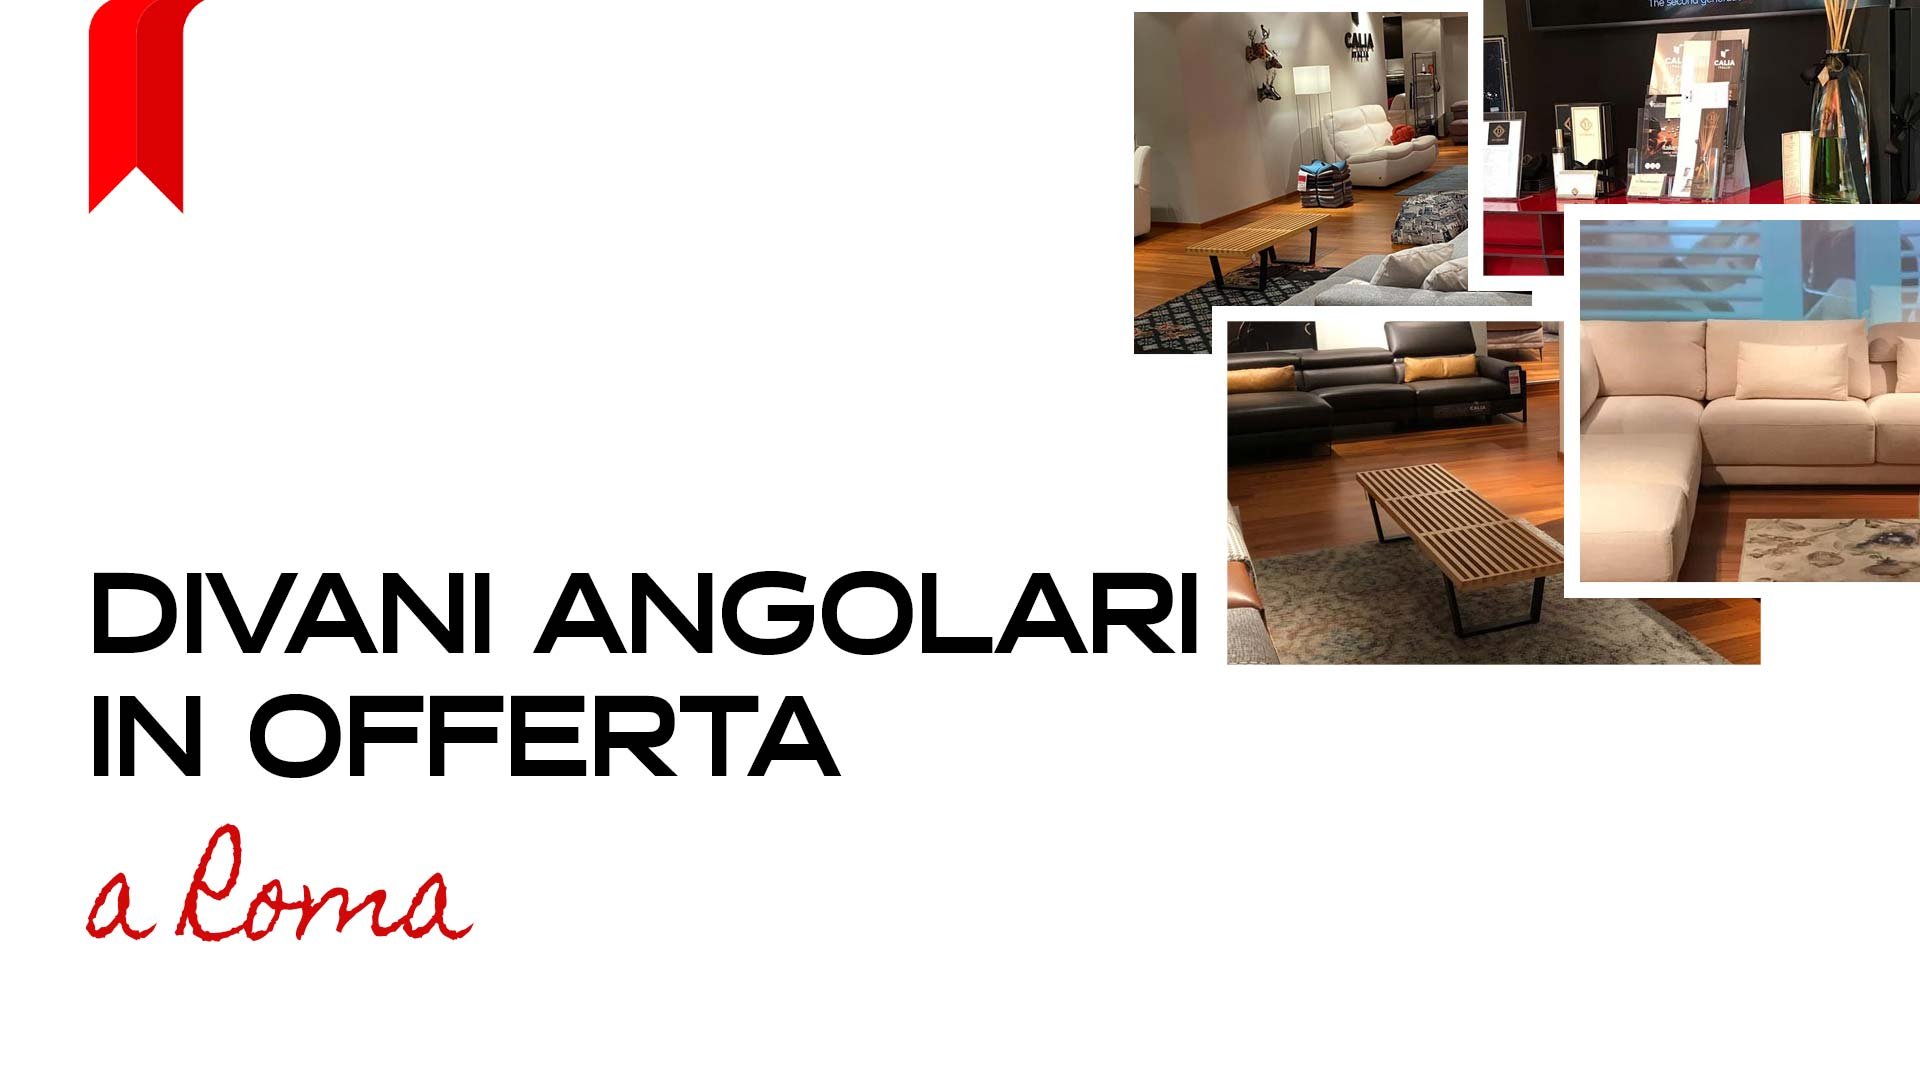 You are currently viewing Divani Angolari in offerta a Roma